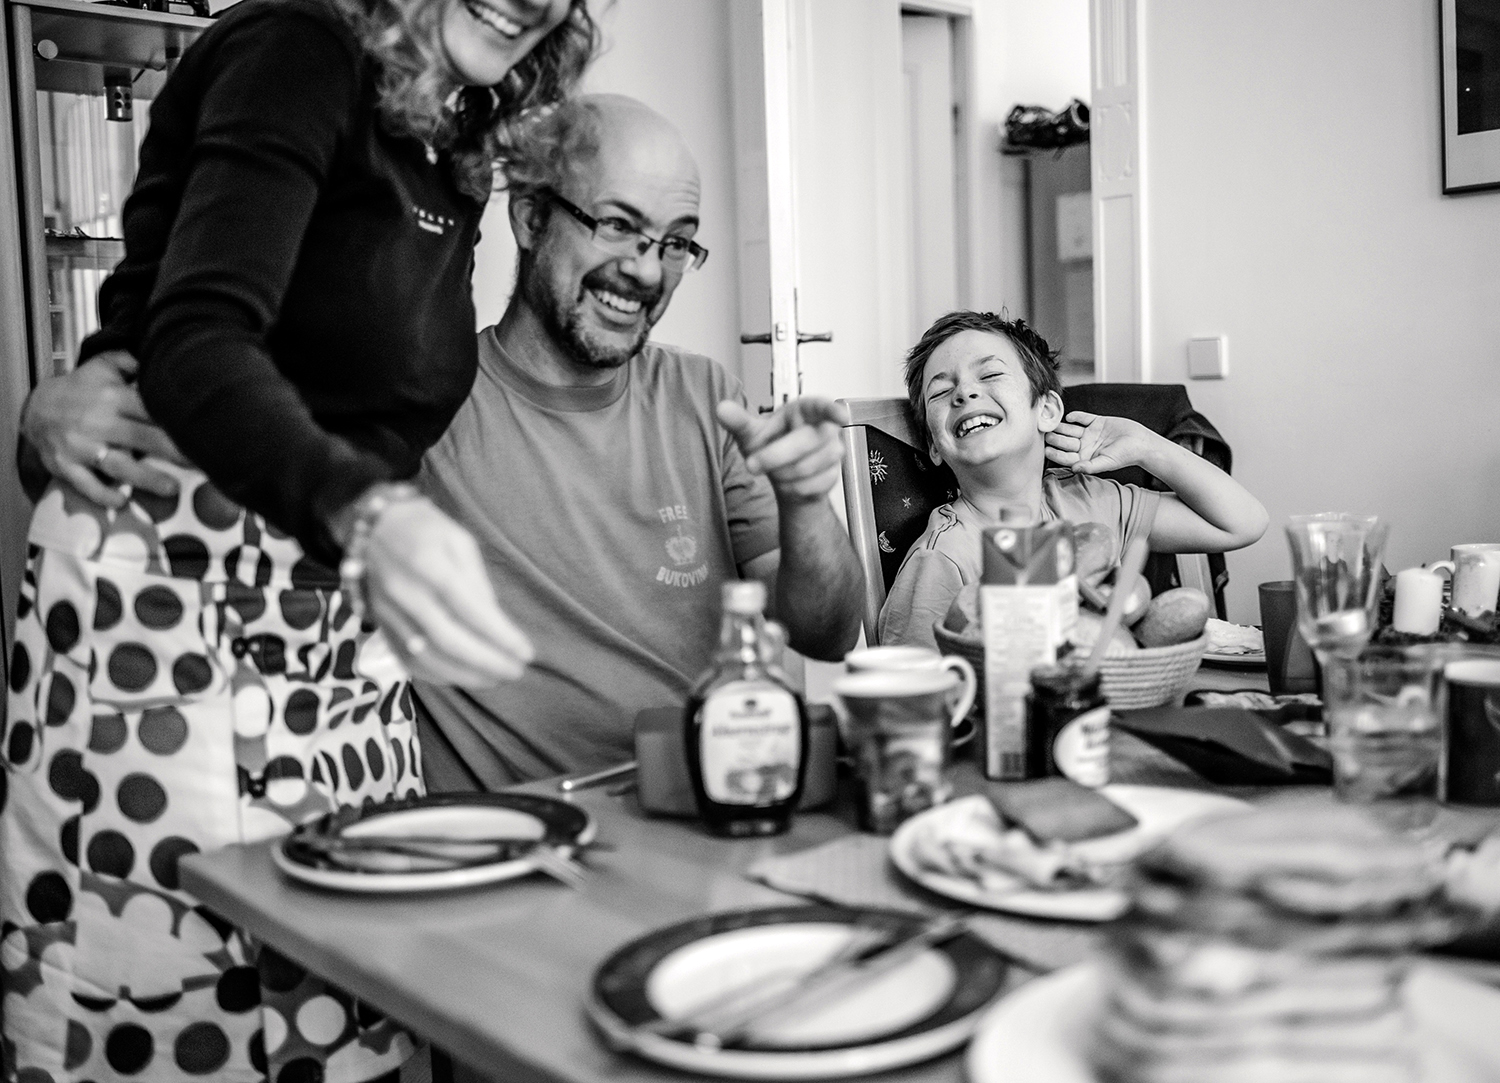 fotoshooting-familie-reportage